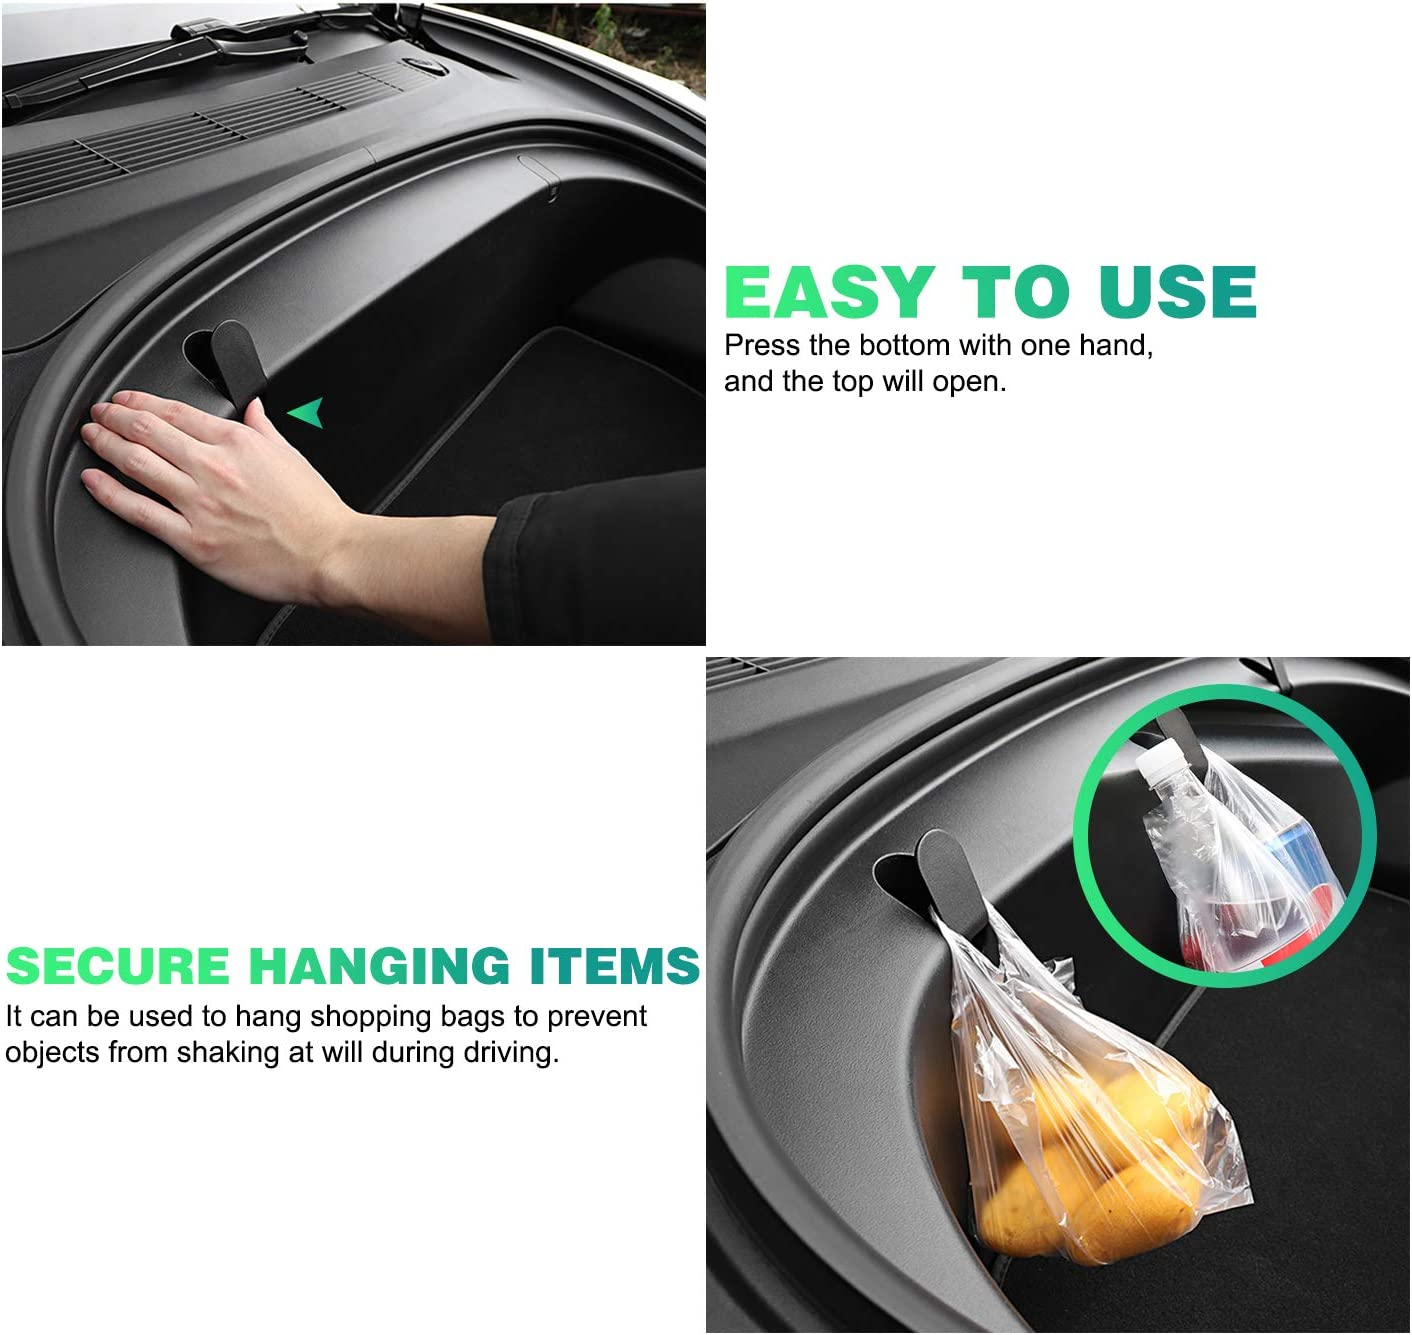 2PCS Tesla Model 3 2020 Accessories,Premium Model 3 Frunk Hooks Compatible for Tesla Model 3 Grocery Hooks,Keep Grocery Organized and Clean